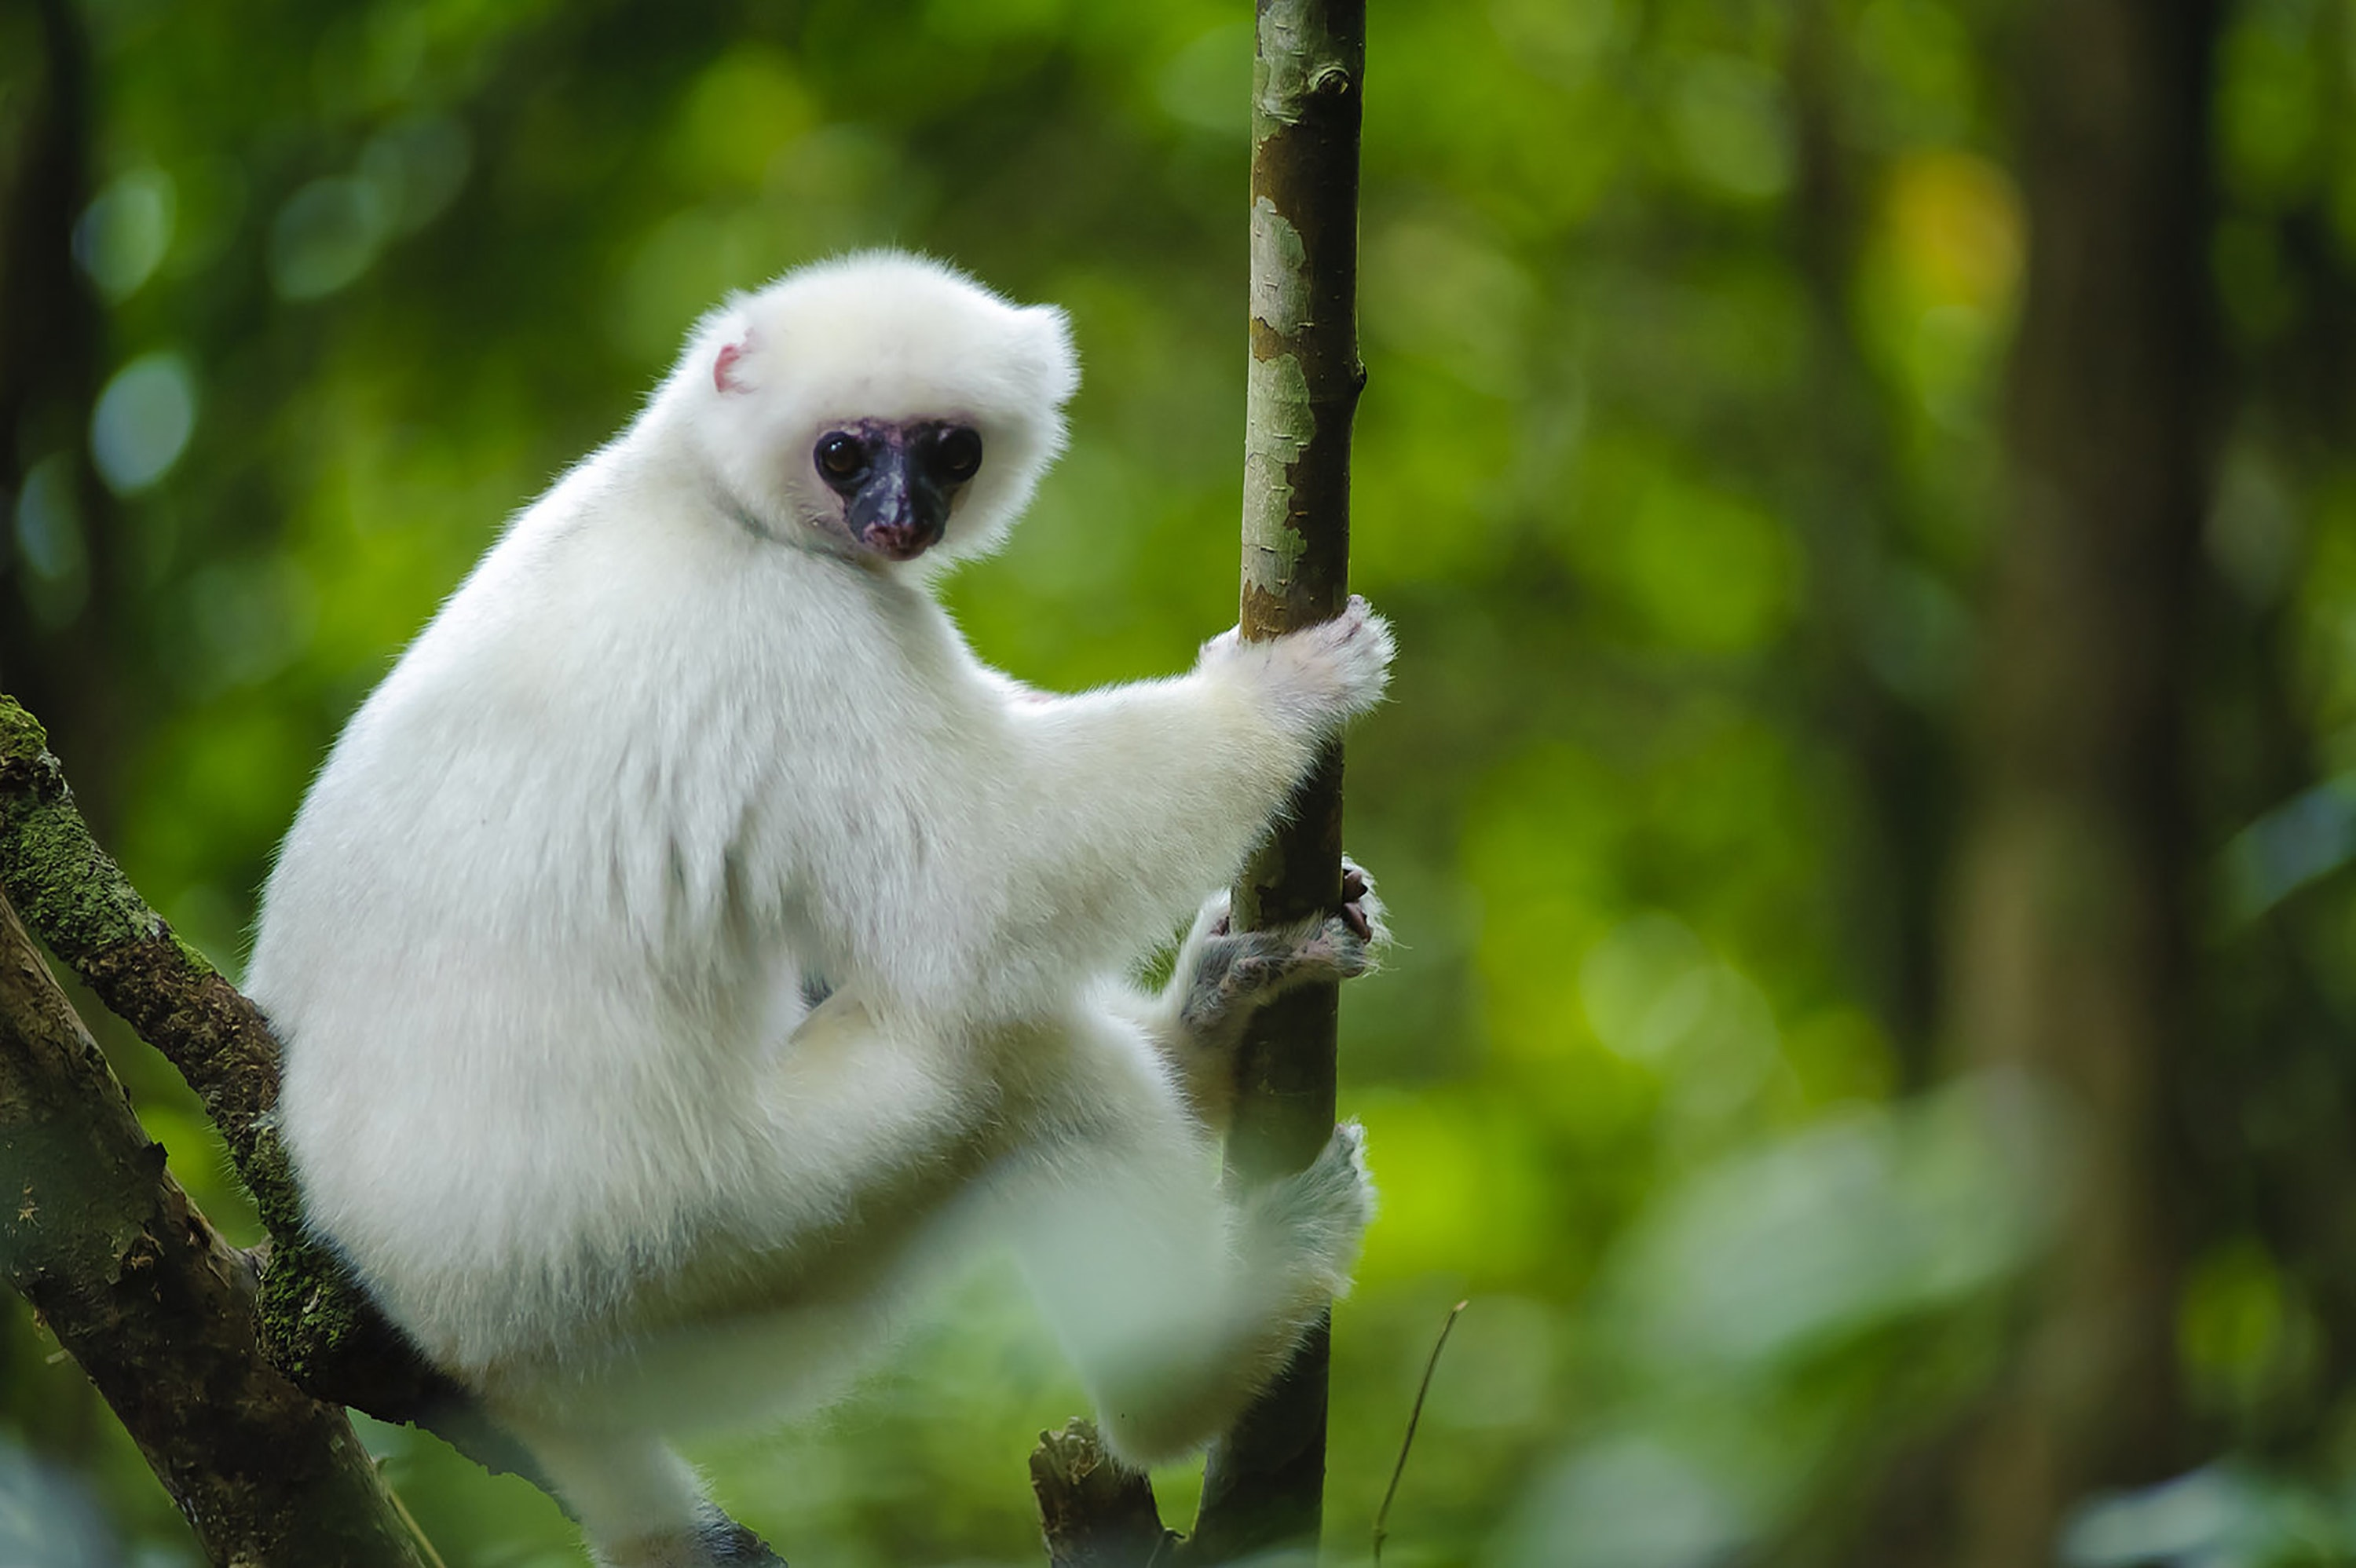 Madagascar's biodiversity is astounding; the island is home to many species that exist nowhere else—like the endangered Silky Sifaka lemur.